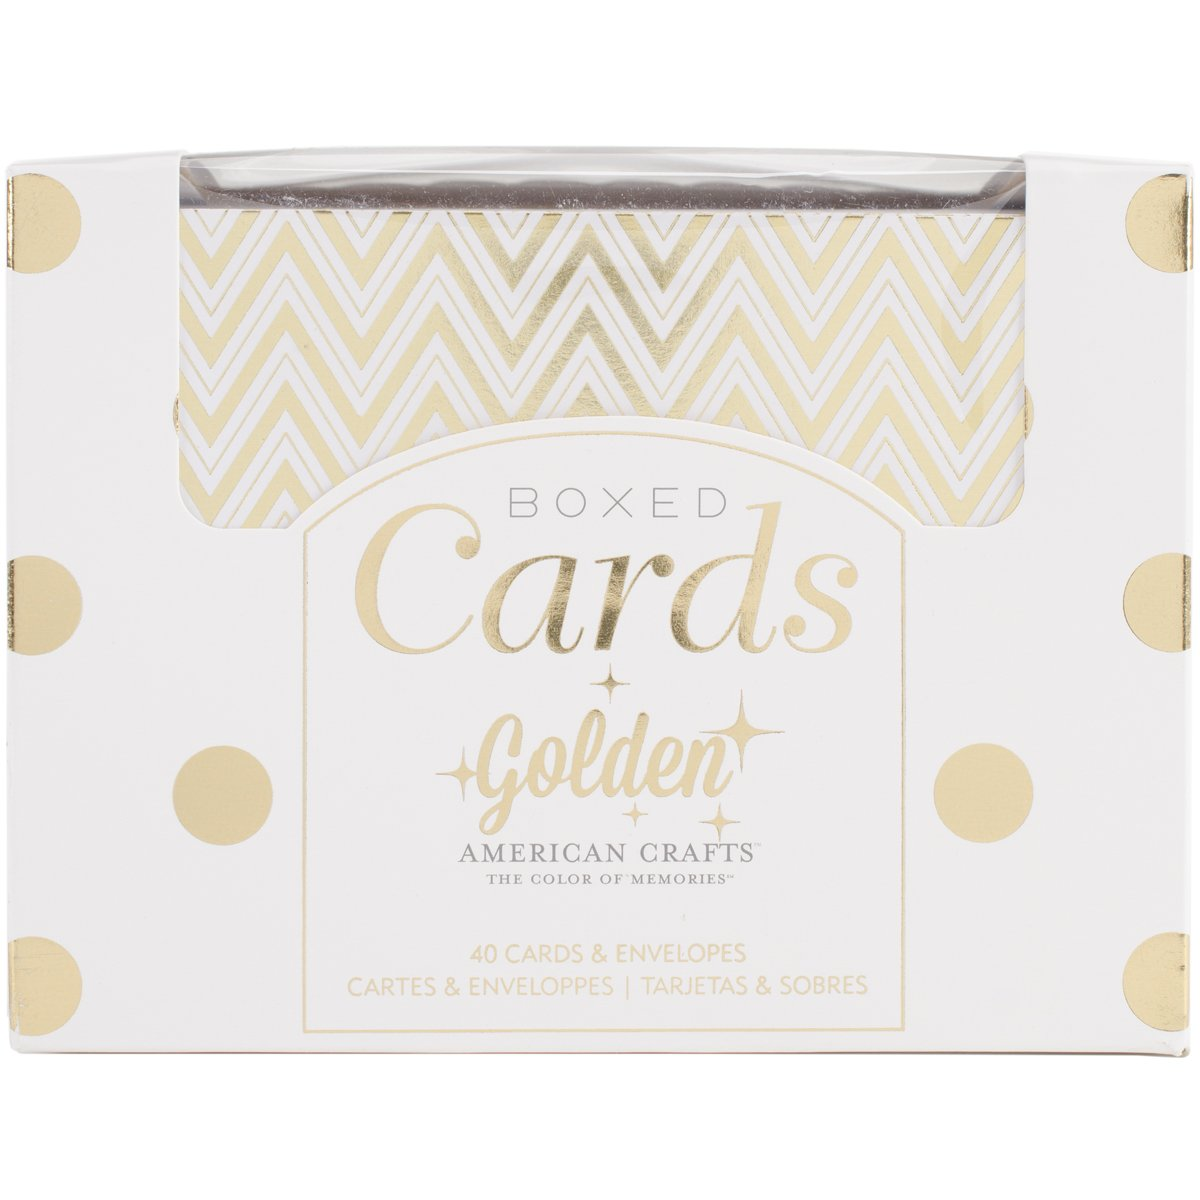 "A2 Card & Envelope Golden Box Set (4.24""X5.5"") with Shiny Gold Foil Treatments by American Crafts, 40 Cards And Envelopes Per Box. Perfect for Everyday, Holiday, Special Occasion Card Giving or Thank You Notes"